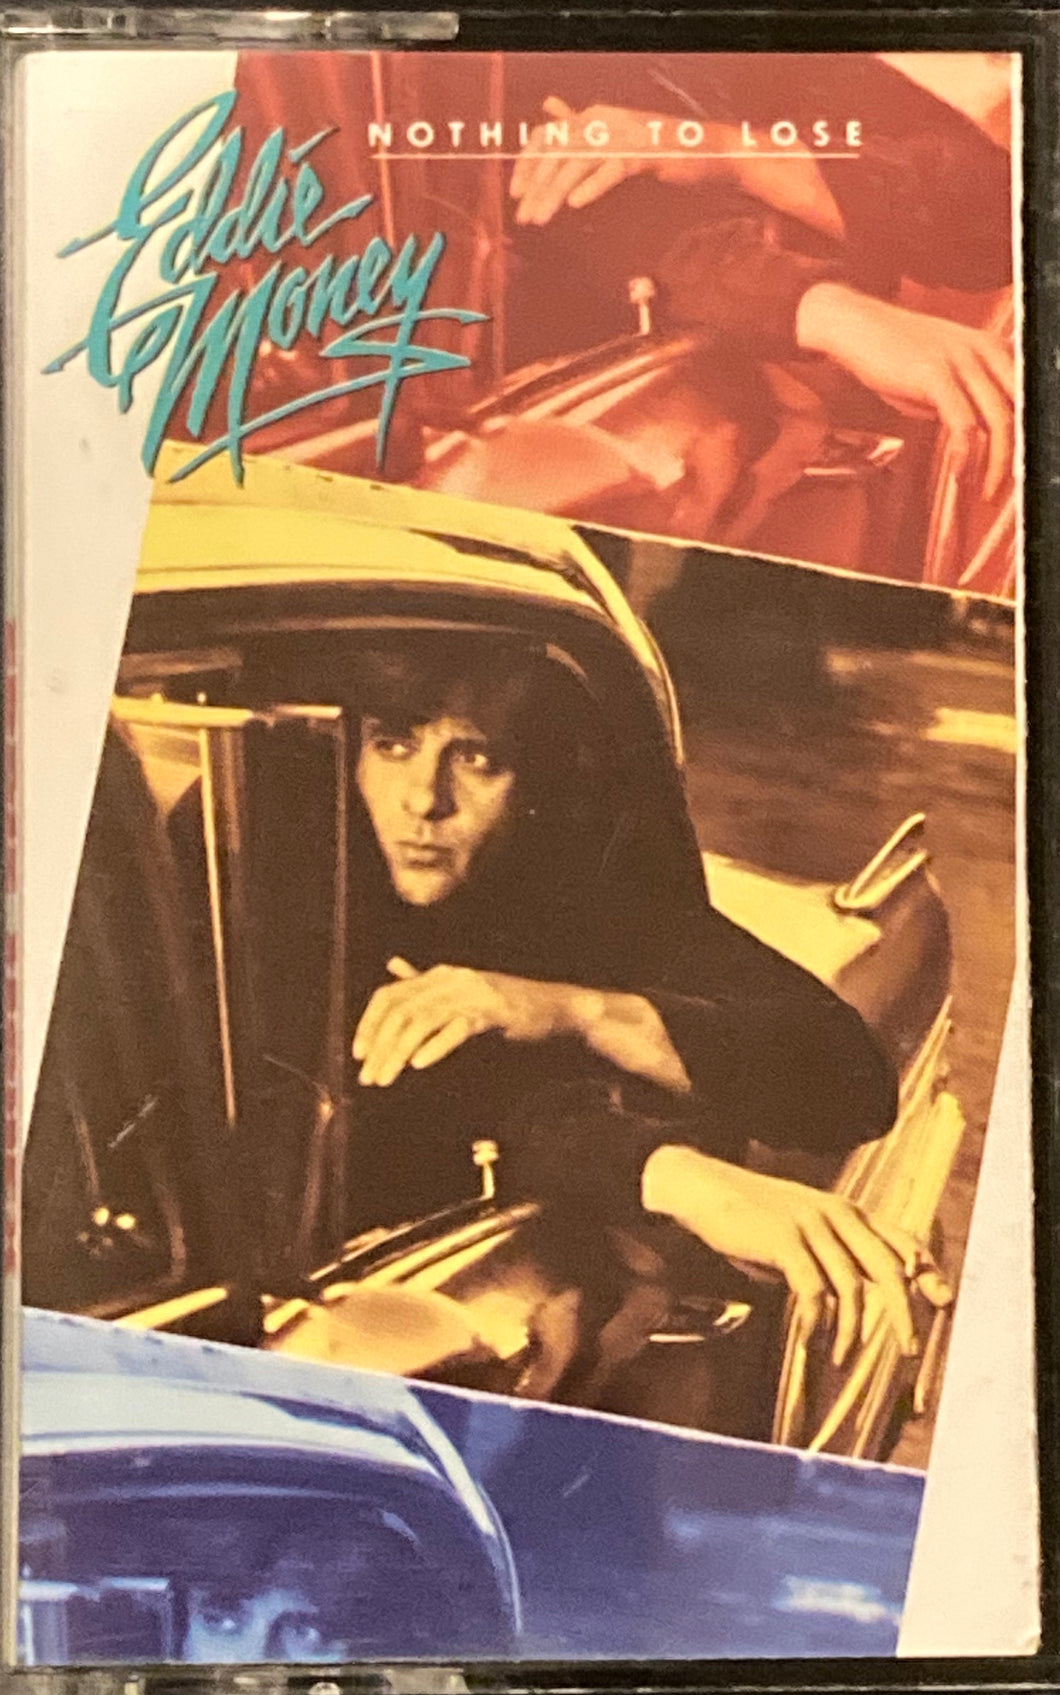 Eddie Money - Nothing To Lose Cassette VG+